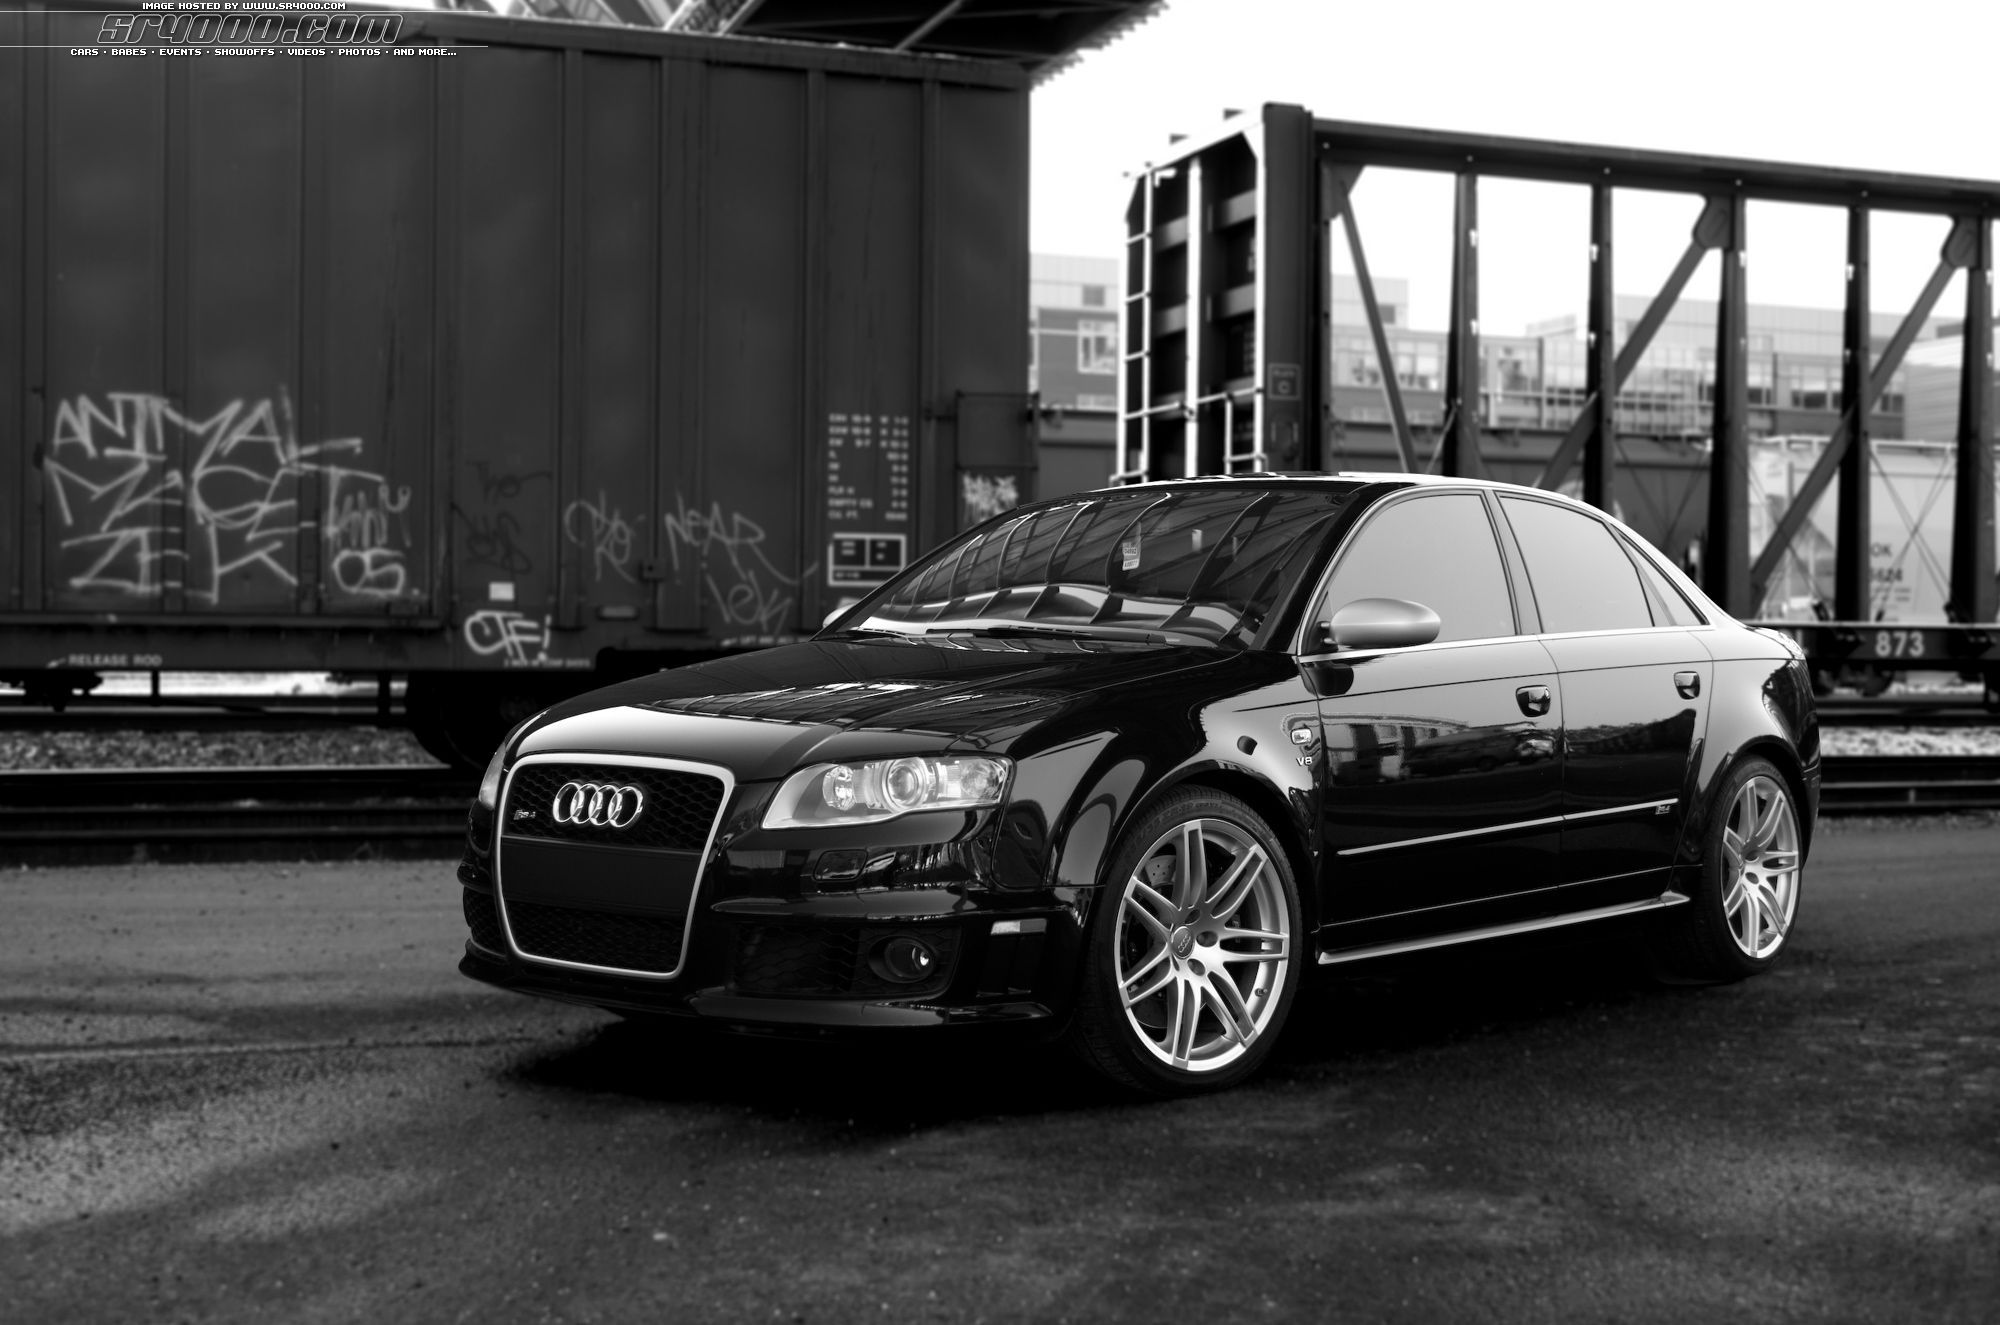 Pin By Lee Pike On Cars Bikes I Want Audi Motor Audi Rs4 Audi